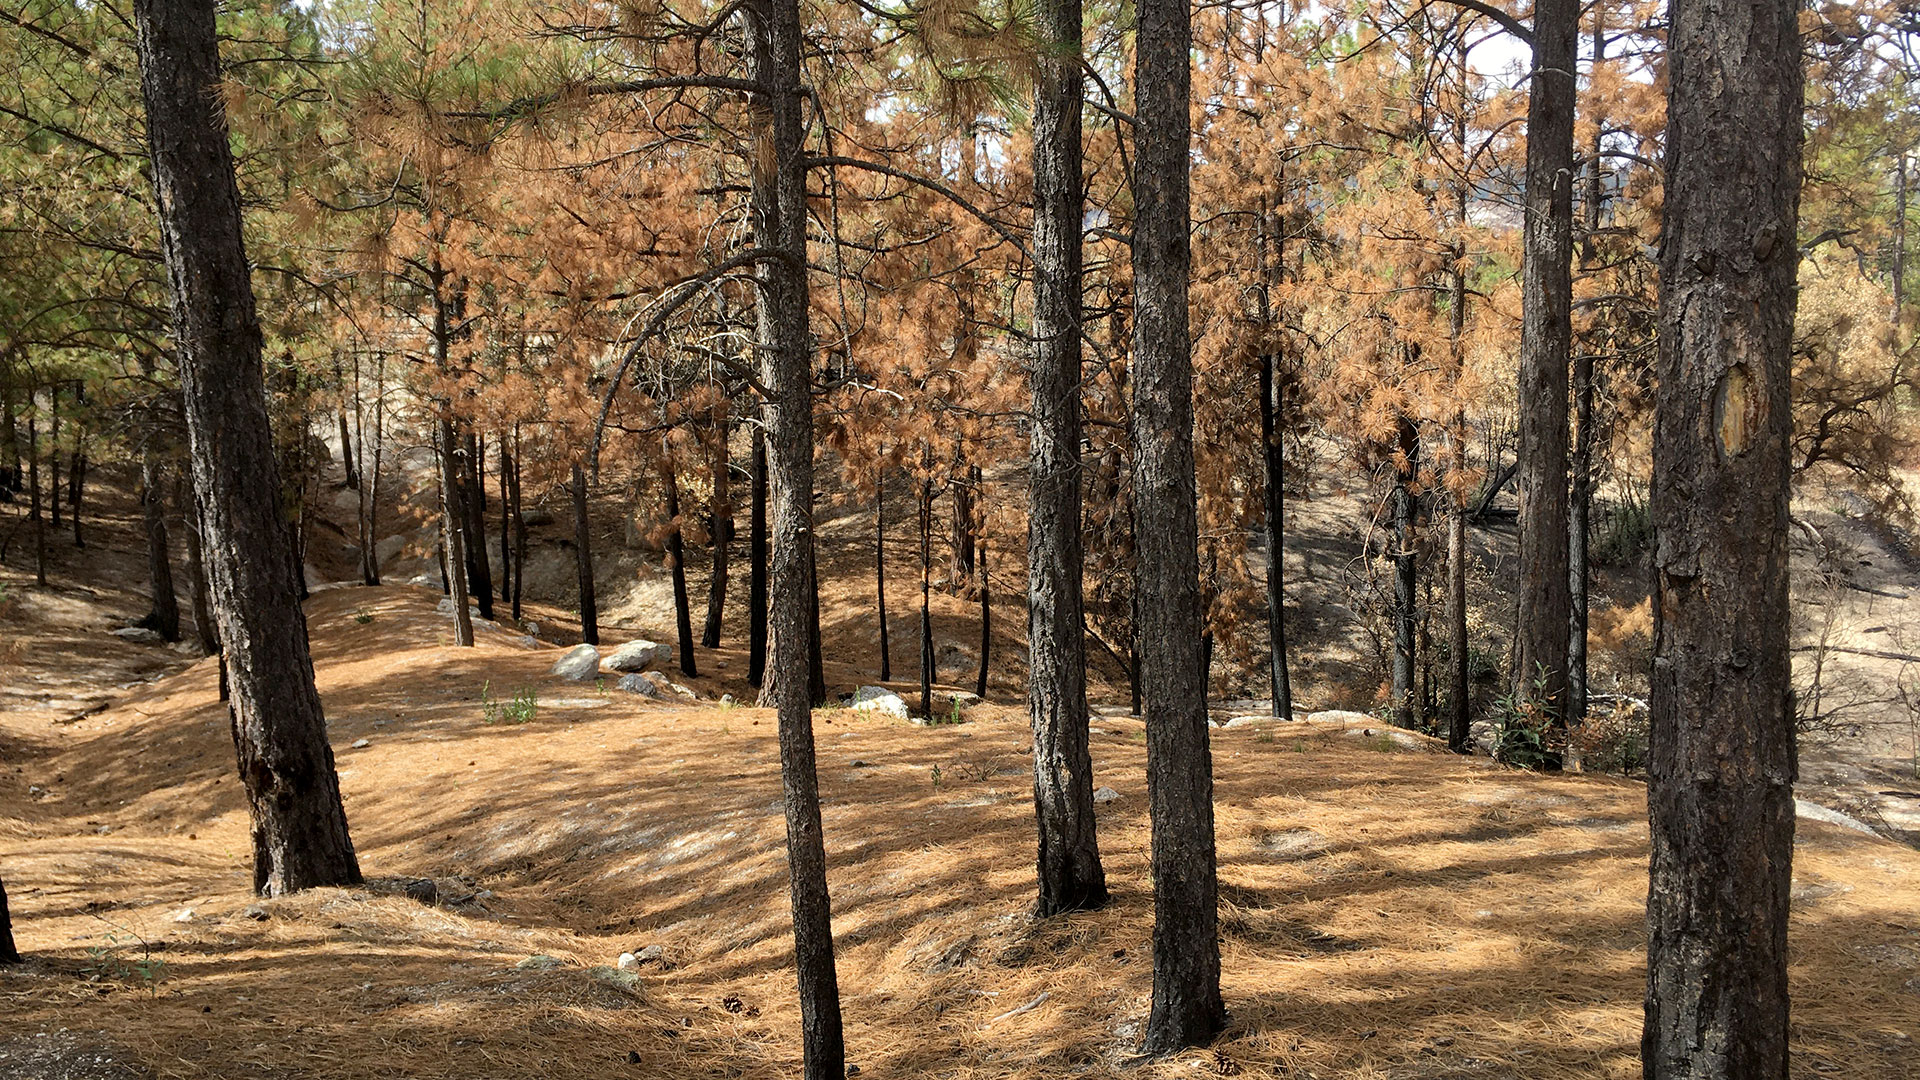 Singed trees on the road up Mount Lemmon in early October, months after the Bighorn Fire.